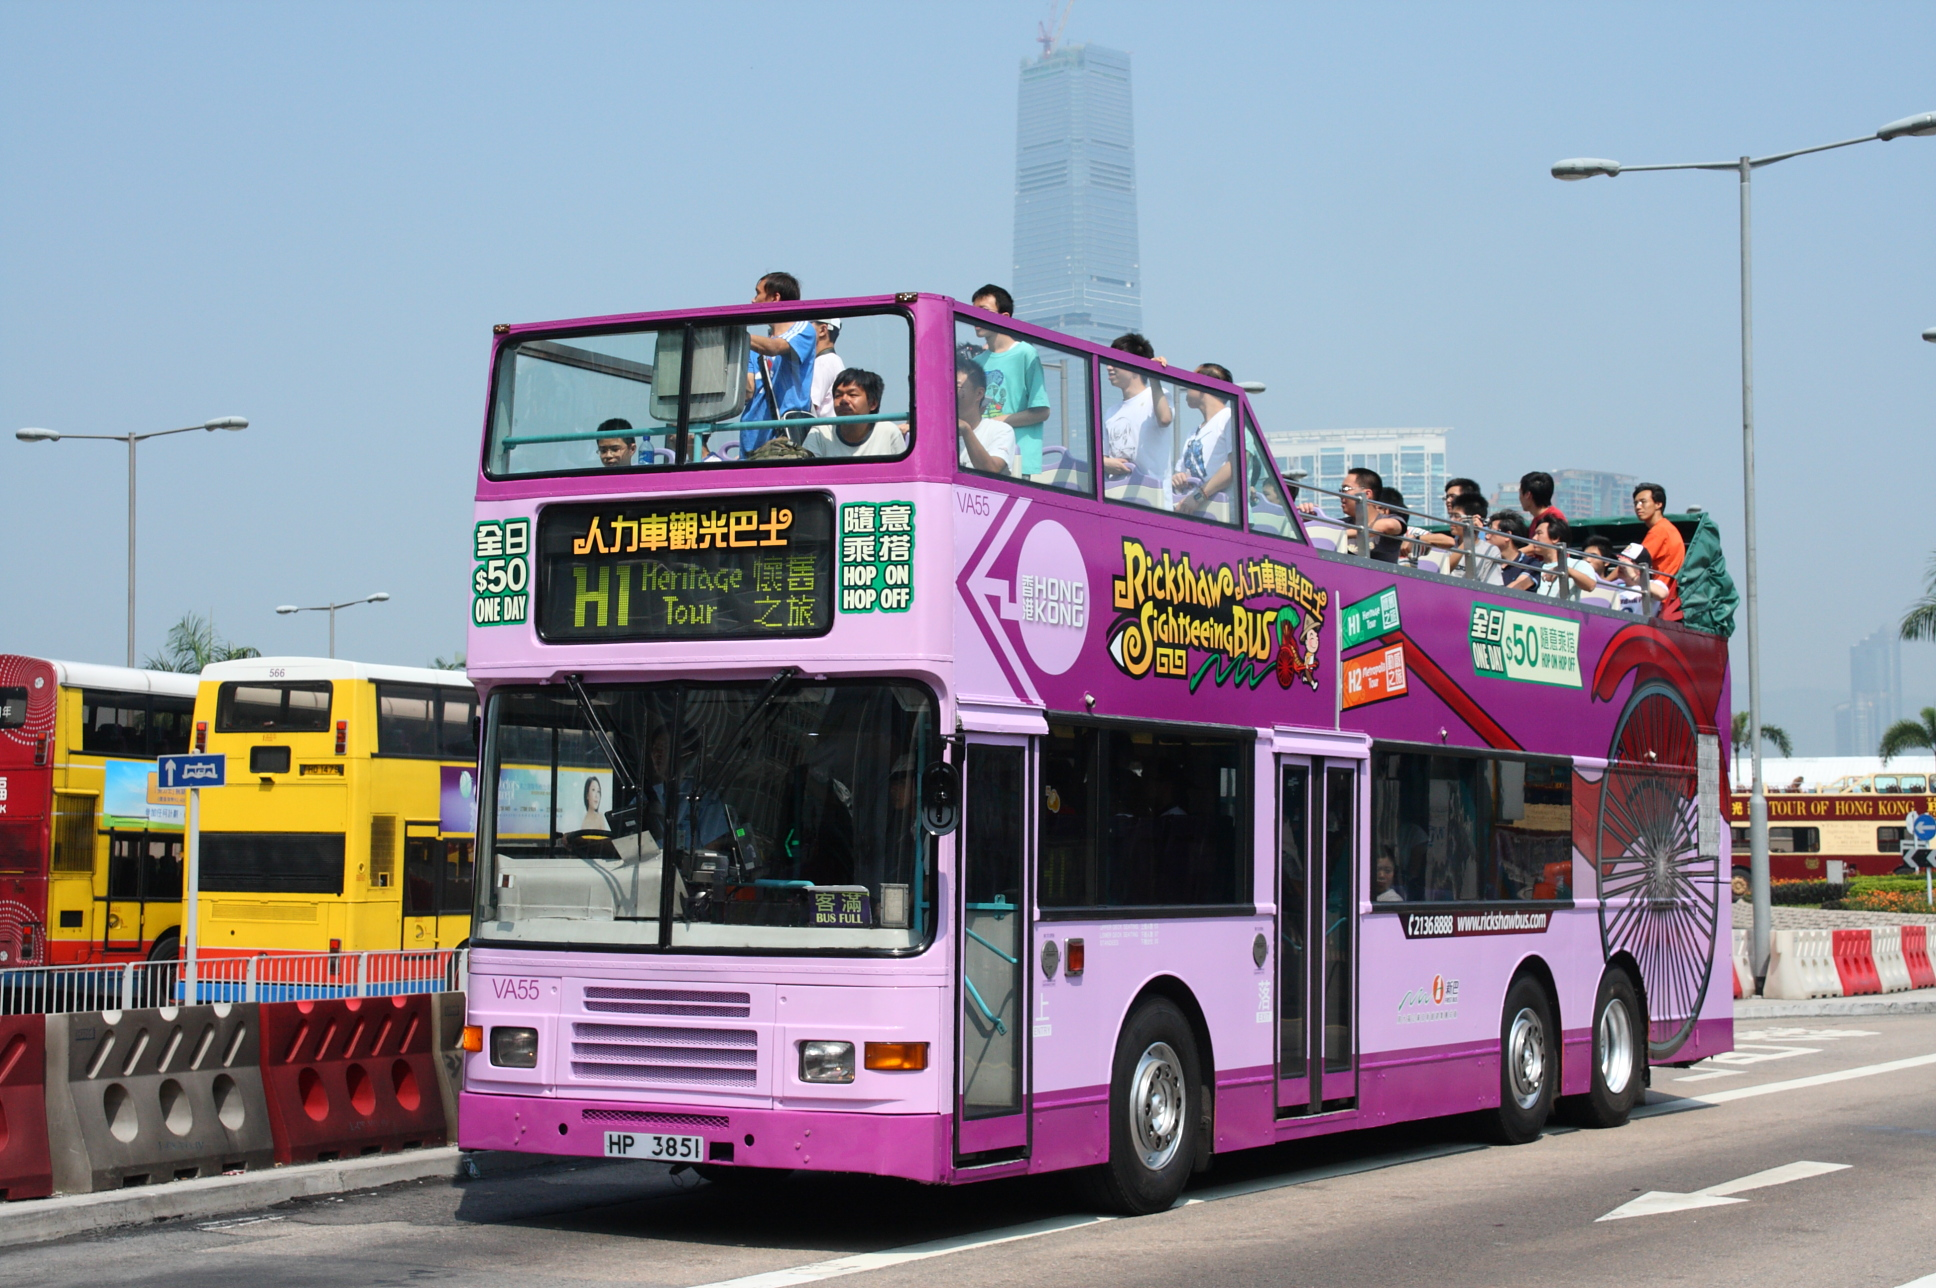 Big Bus Tour Stops In London